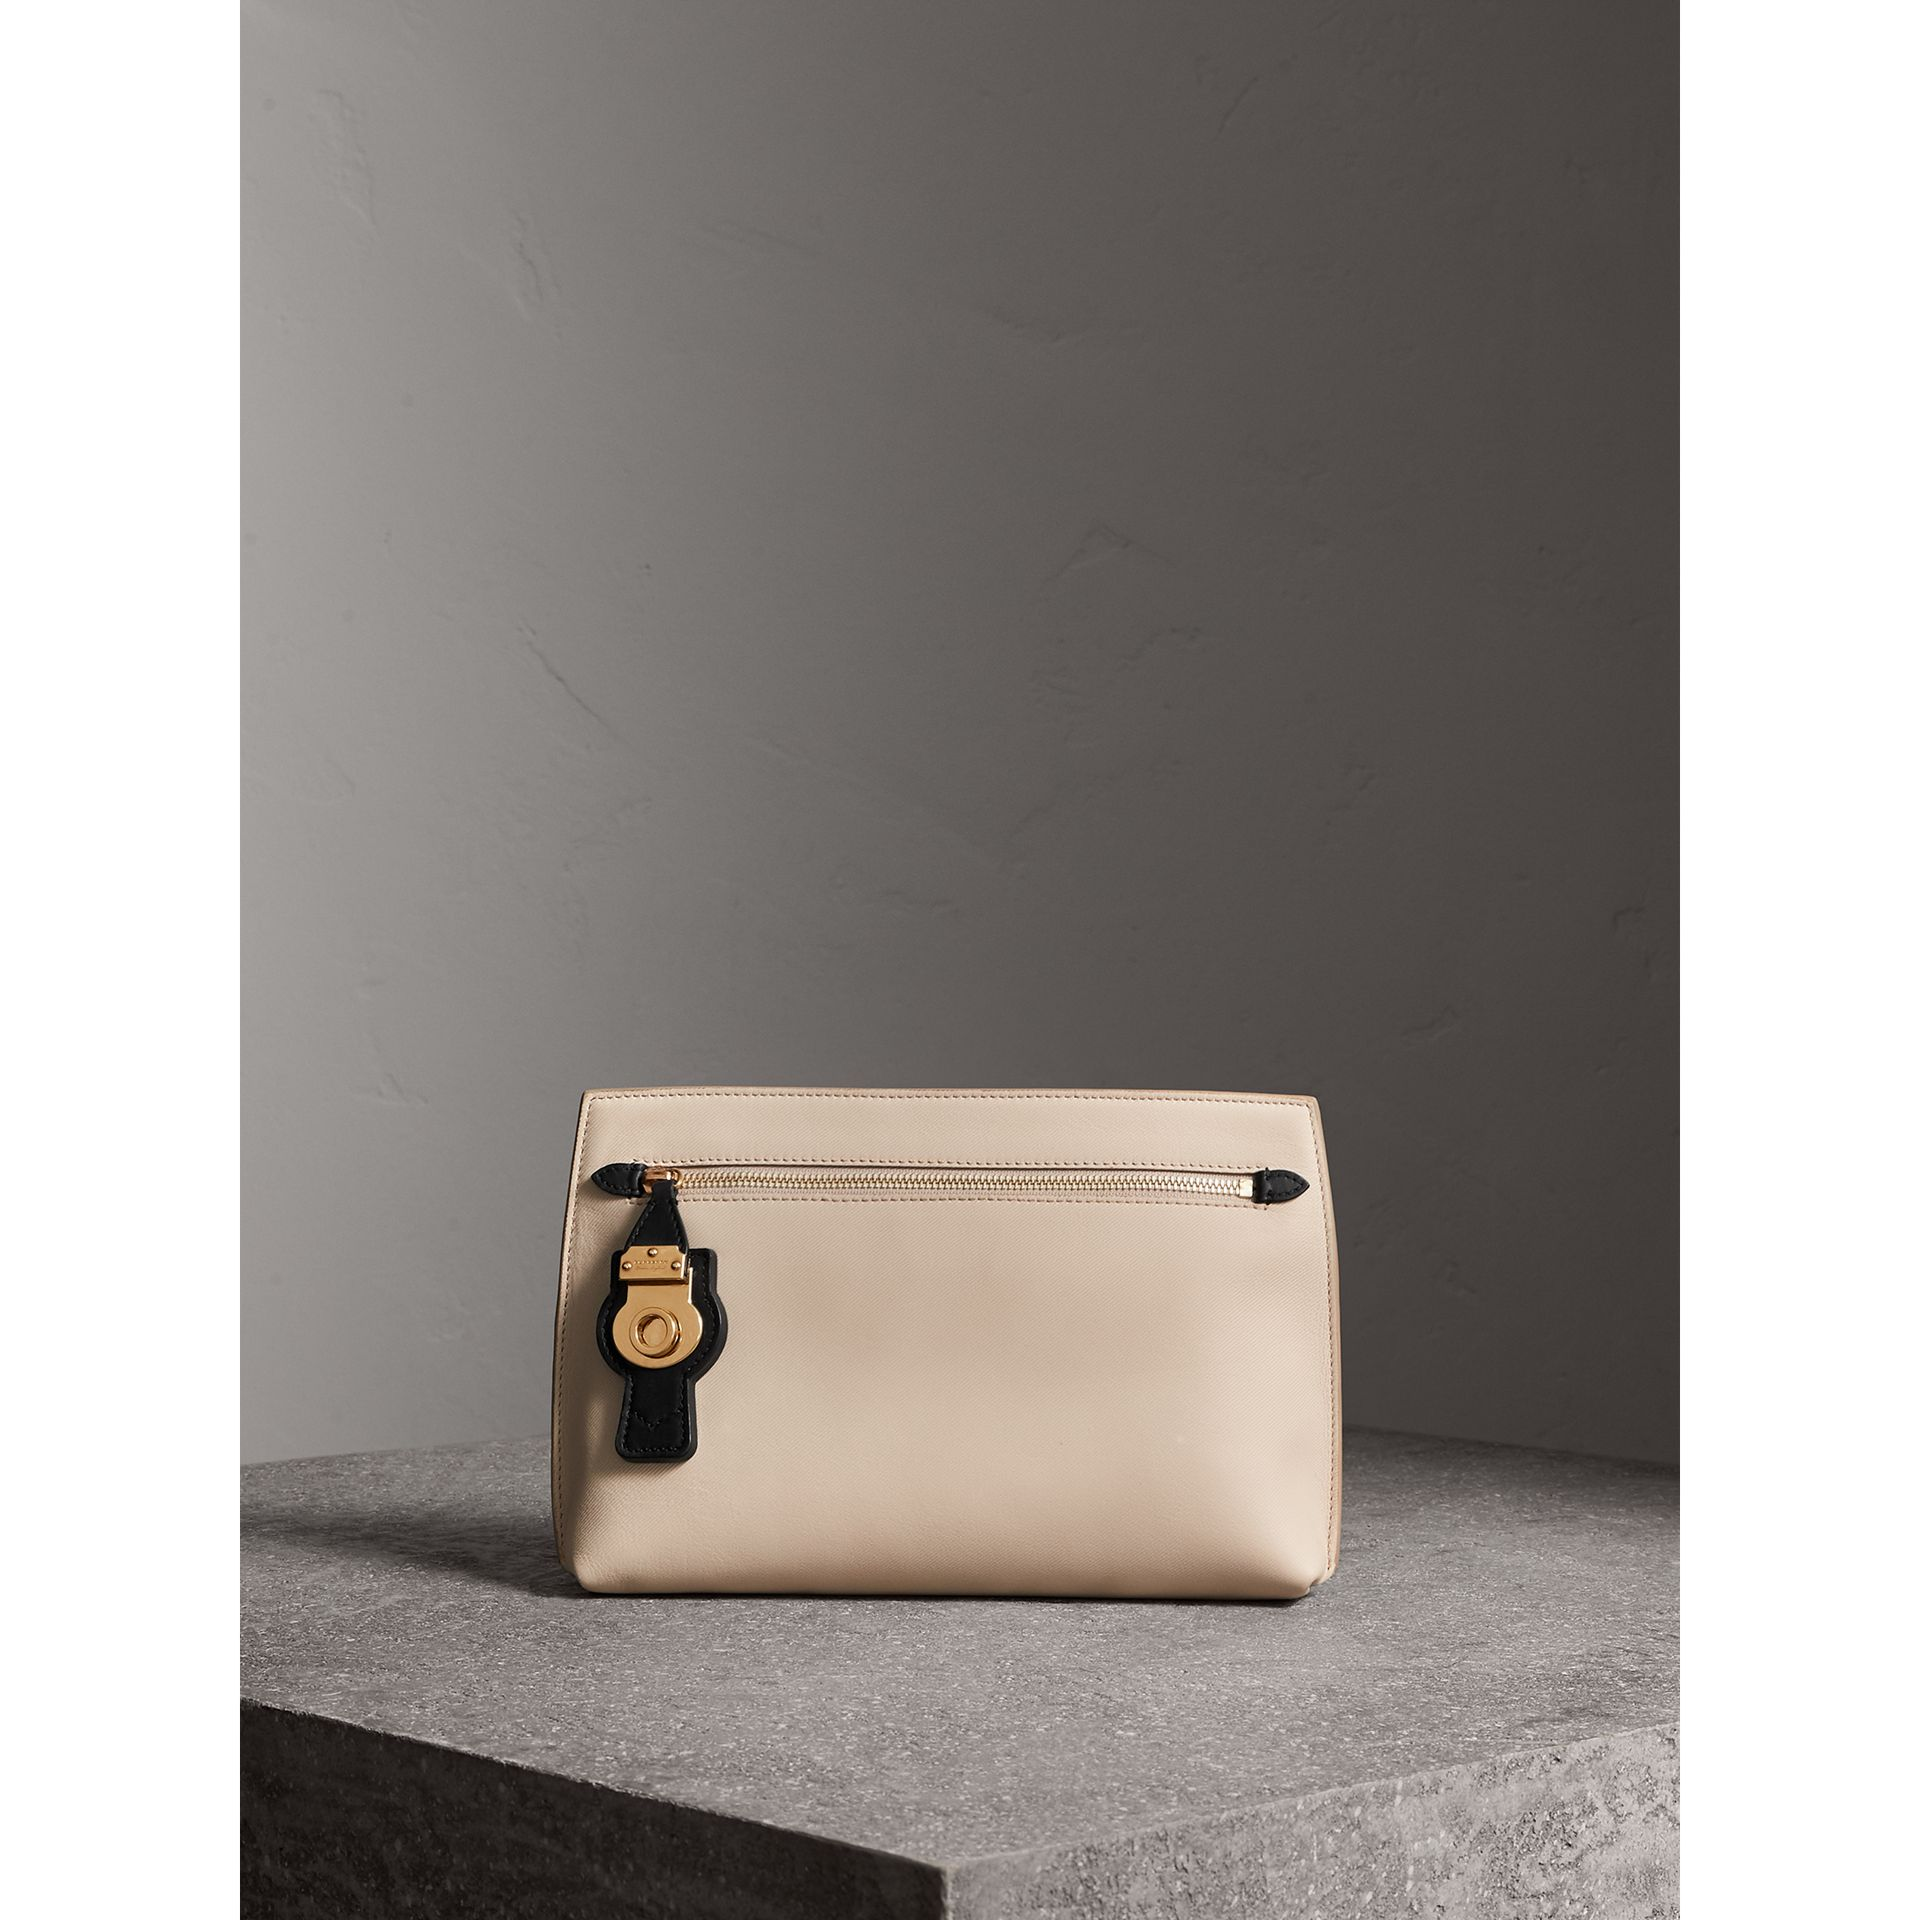 Two-tone Trench Leather Wristlet Pouch in Limestone/black - Women | Burberry Hong Kong - gallery image 0